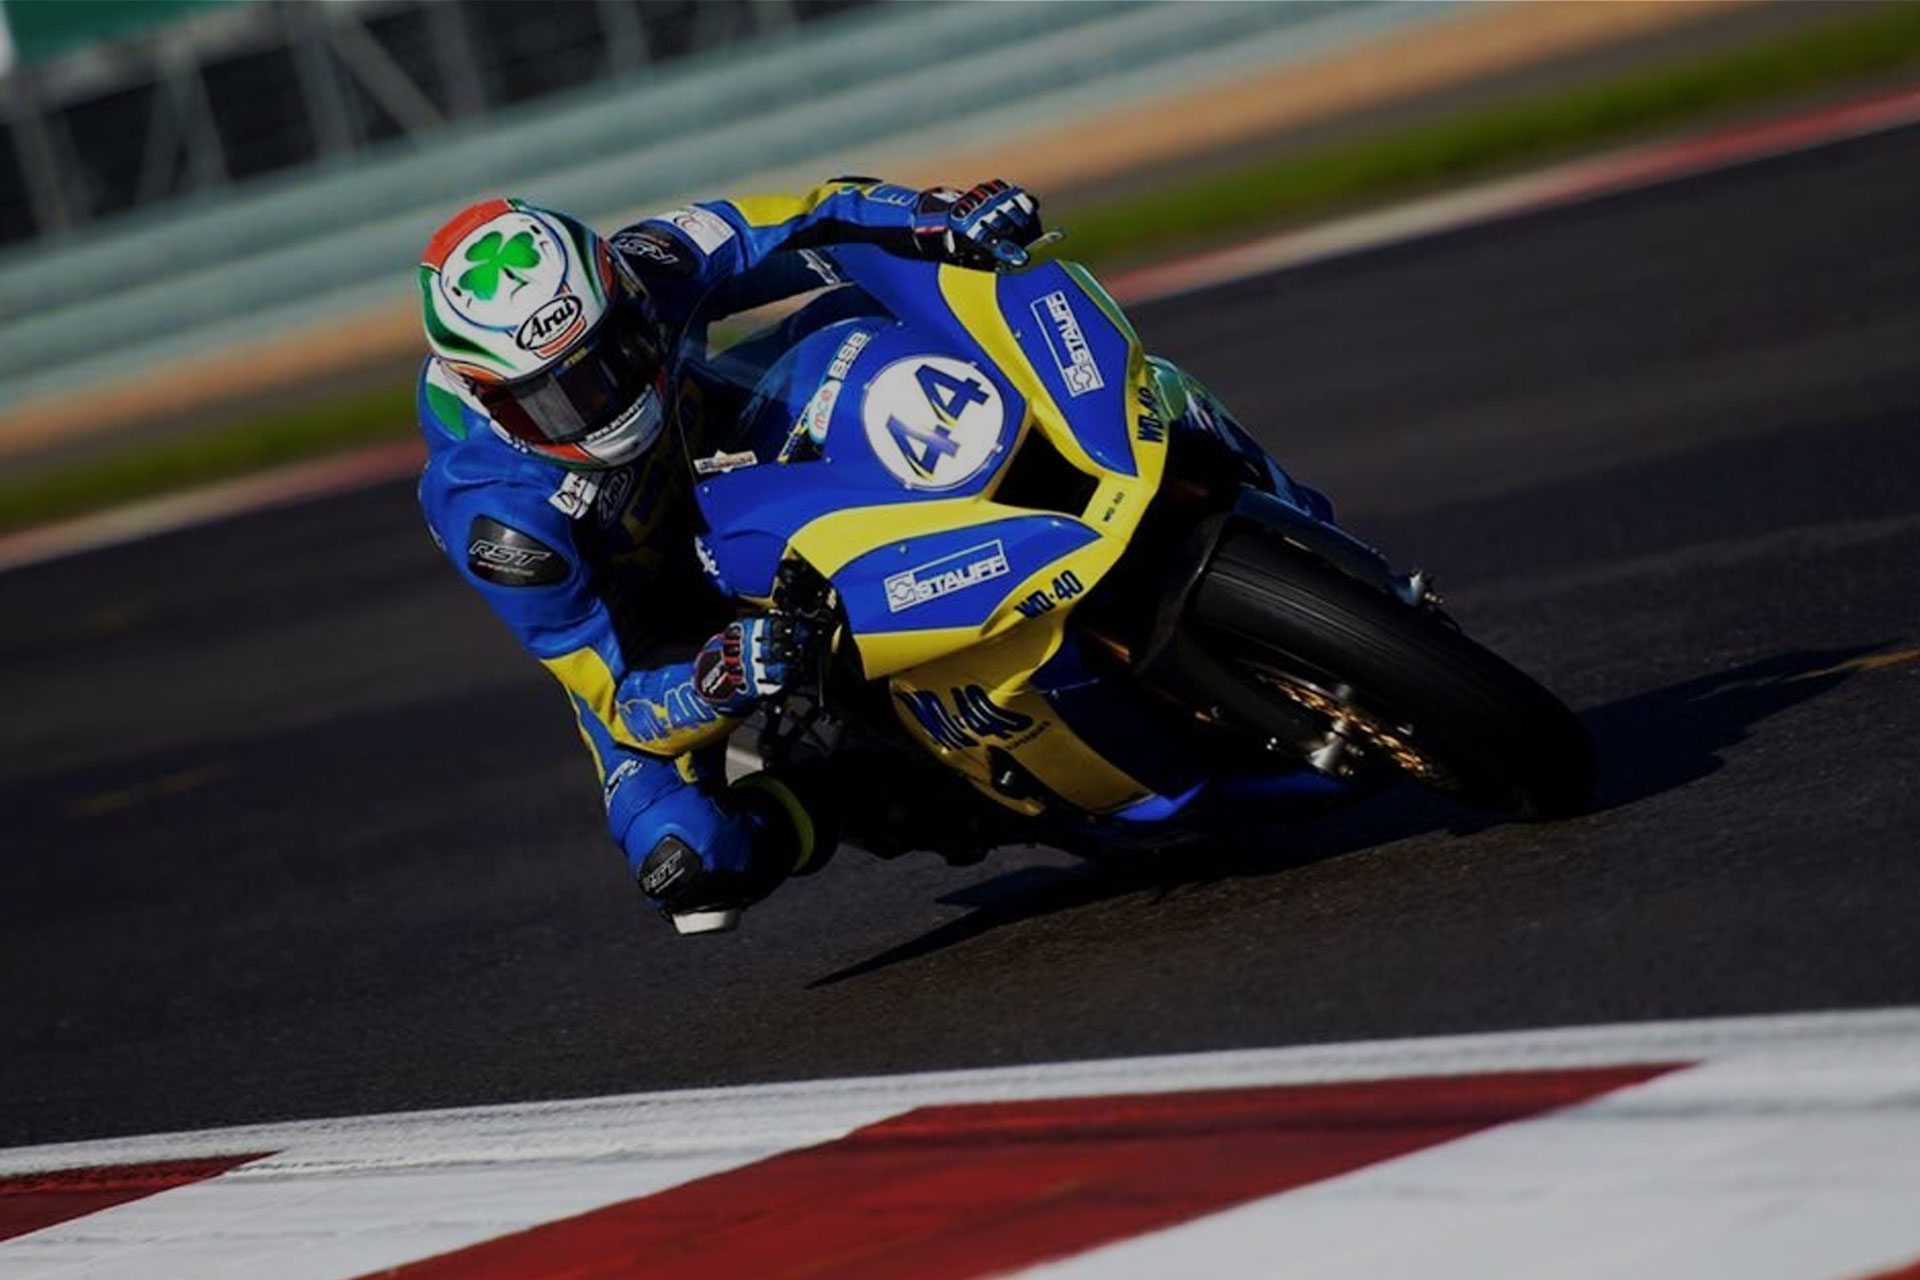 WD-40 Superbike Motorbike team